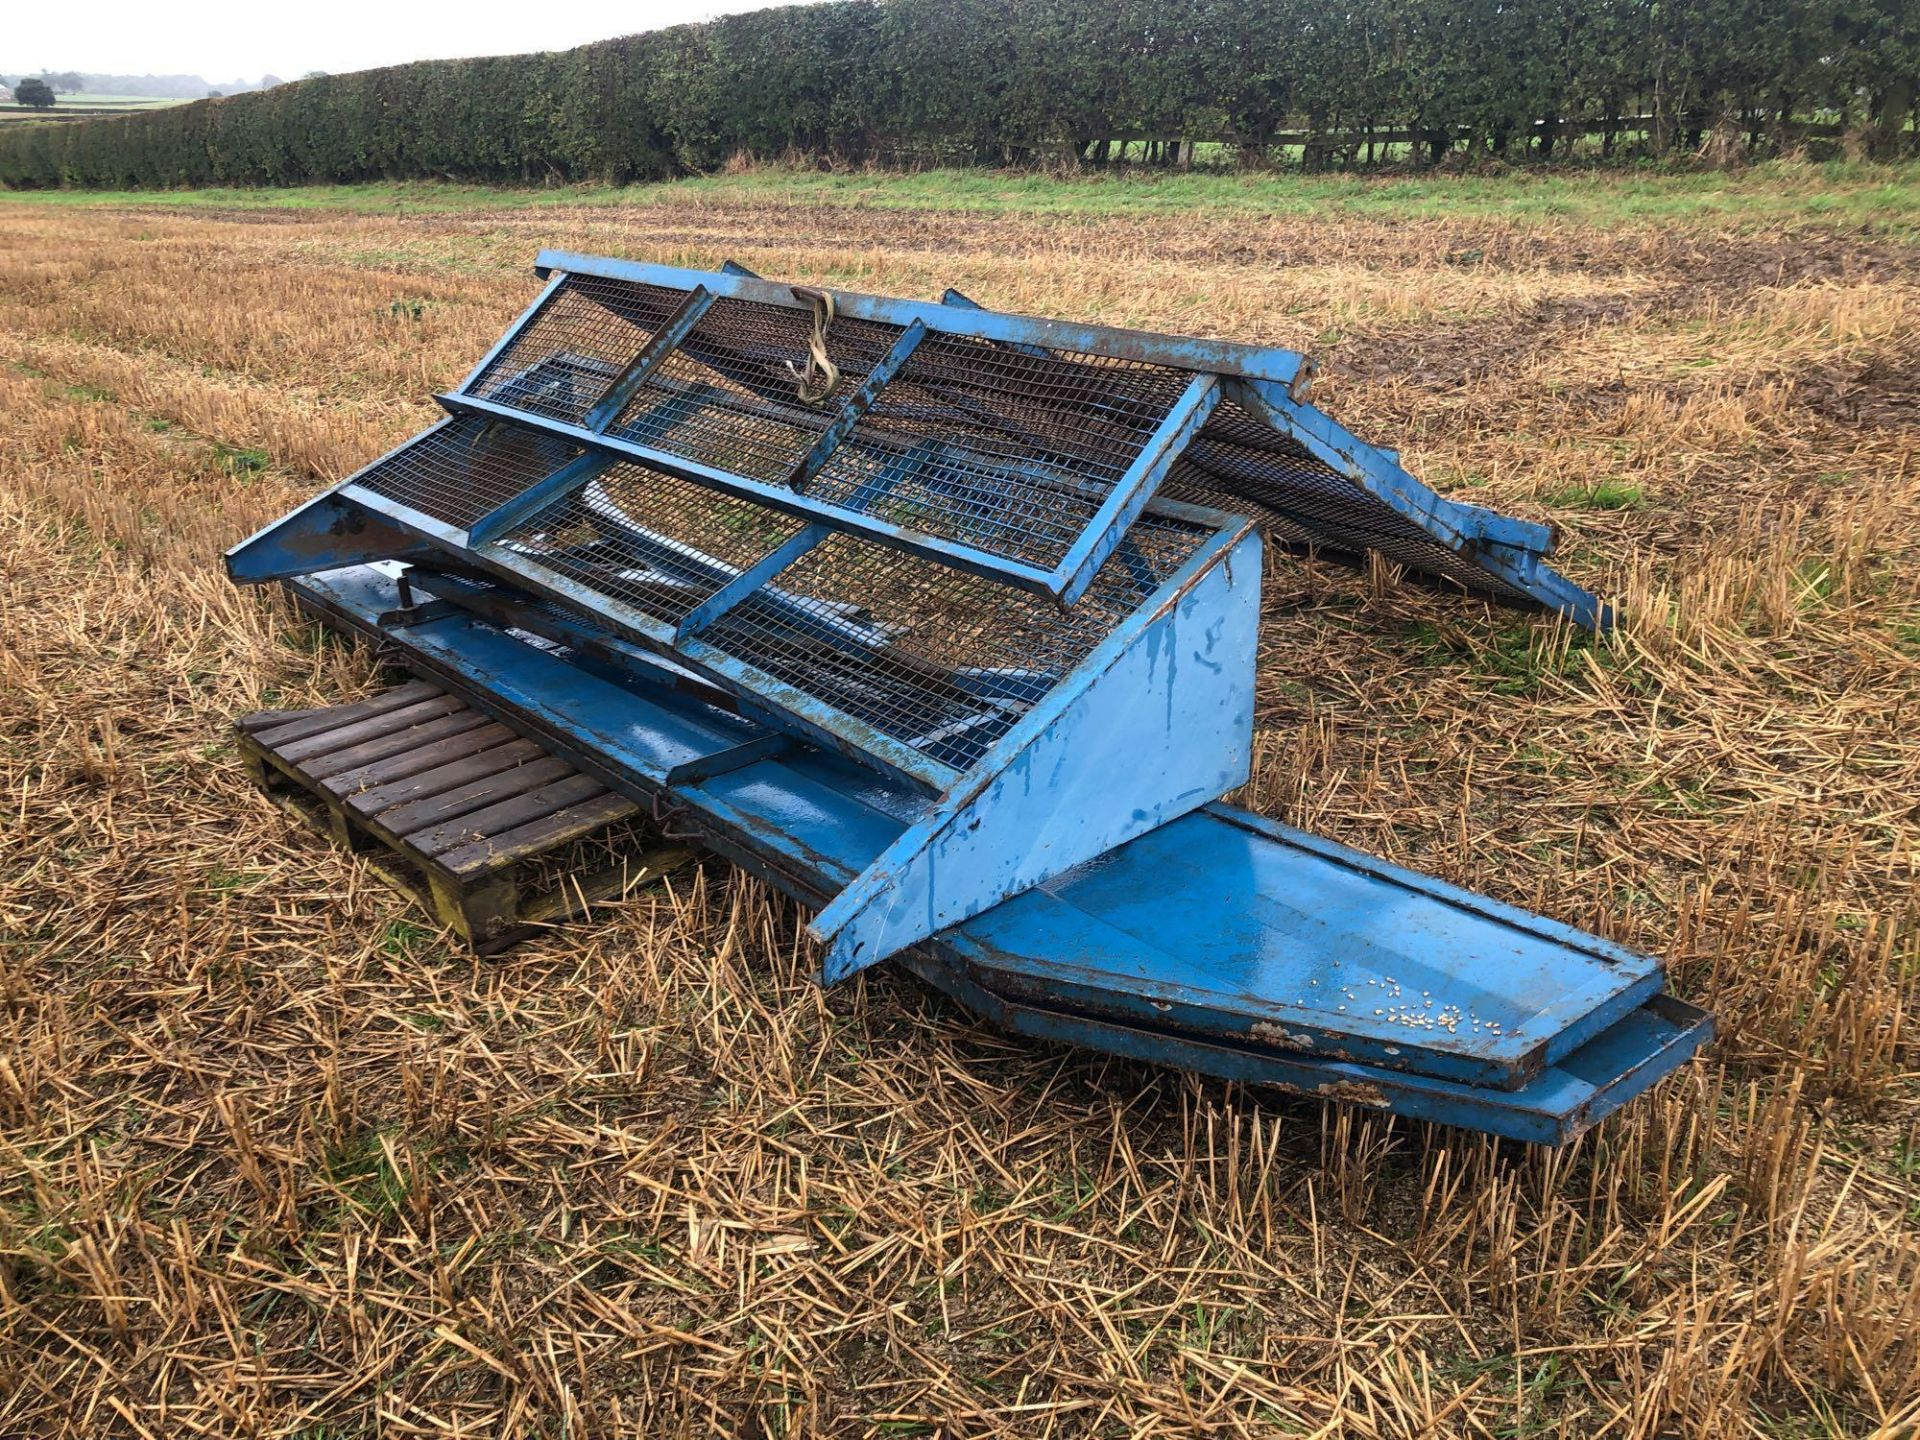 8t twin axle trailer with manual rear door and grain chute. C/w silage sides. On 12.5/80-15.3 wheels - Image 7 of 8